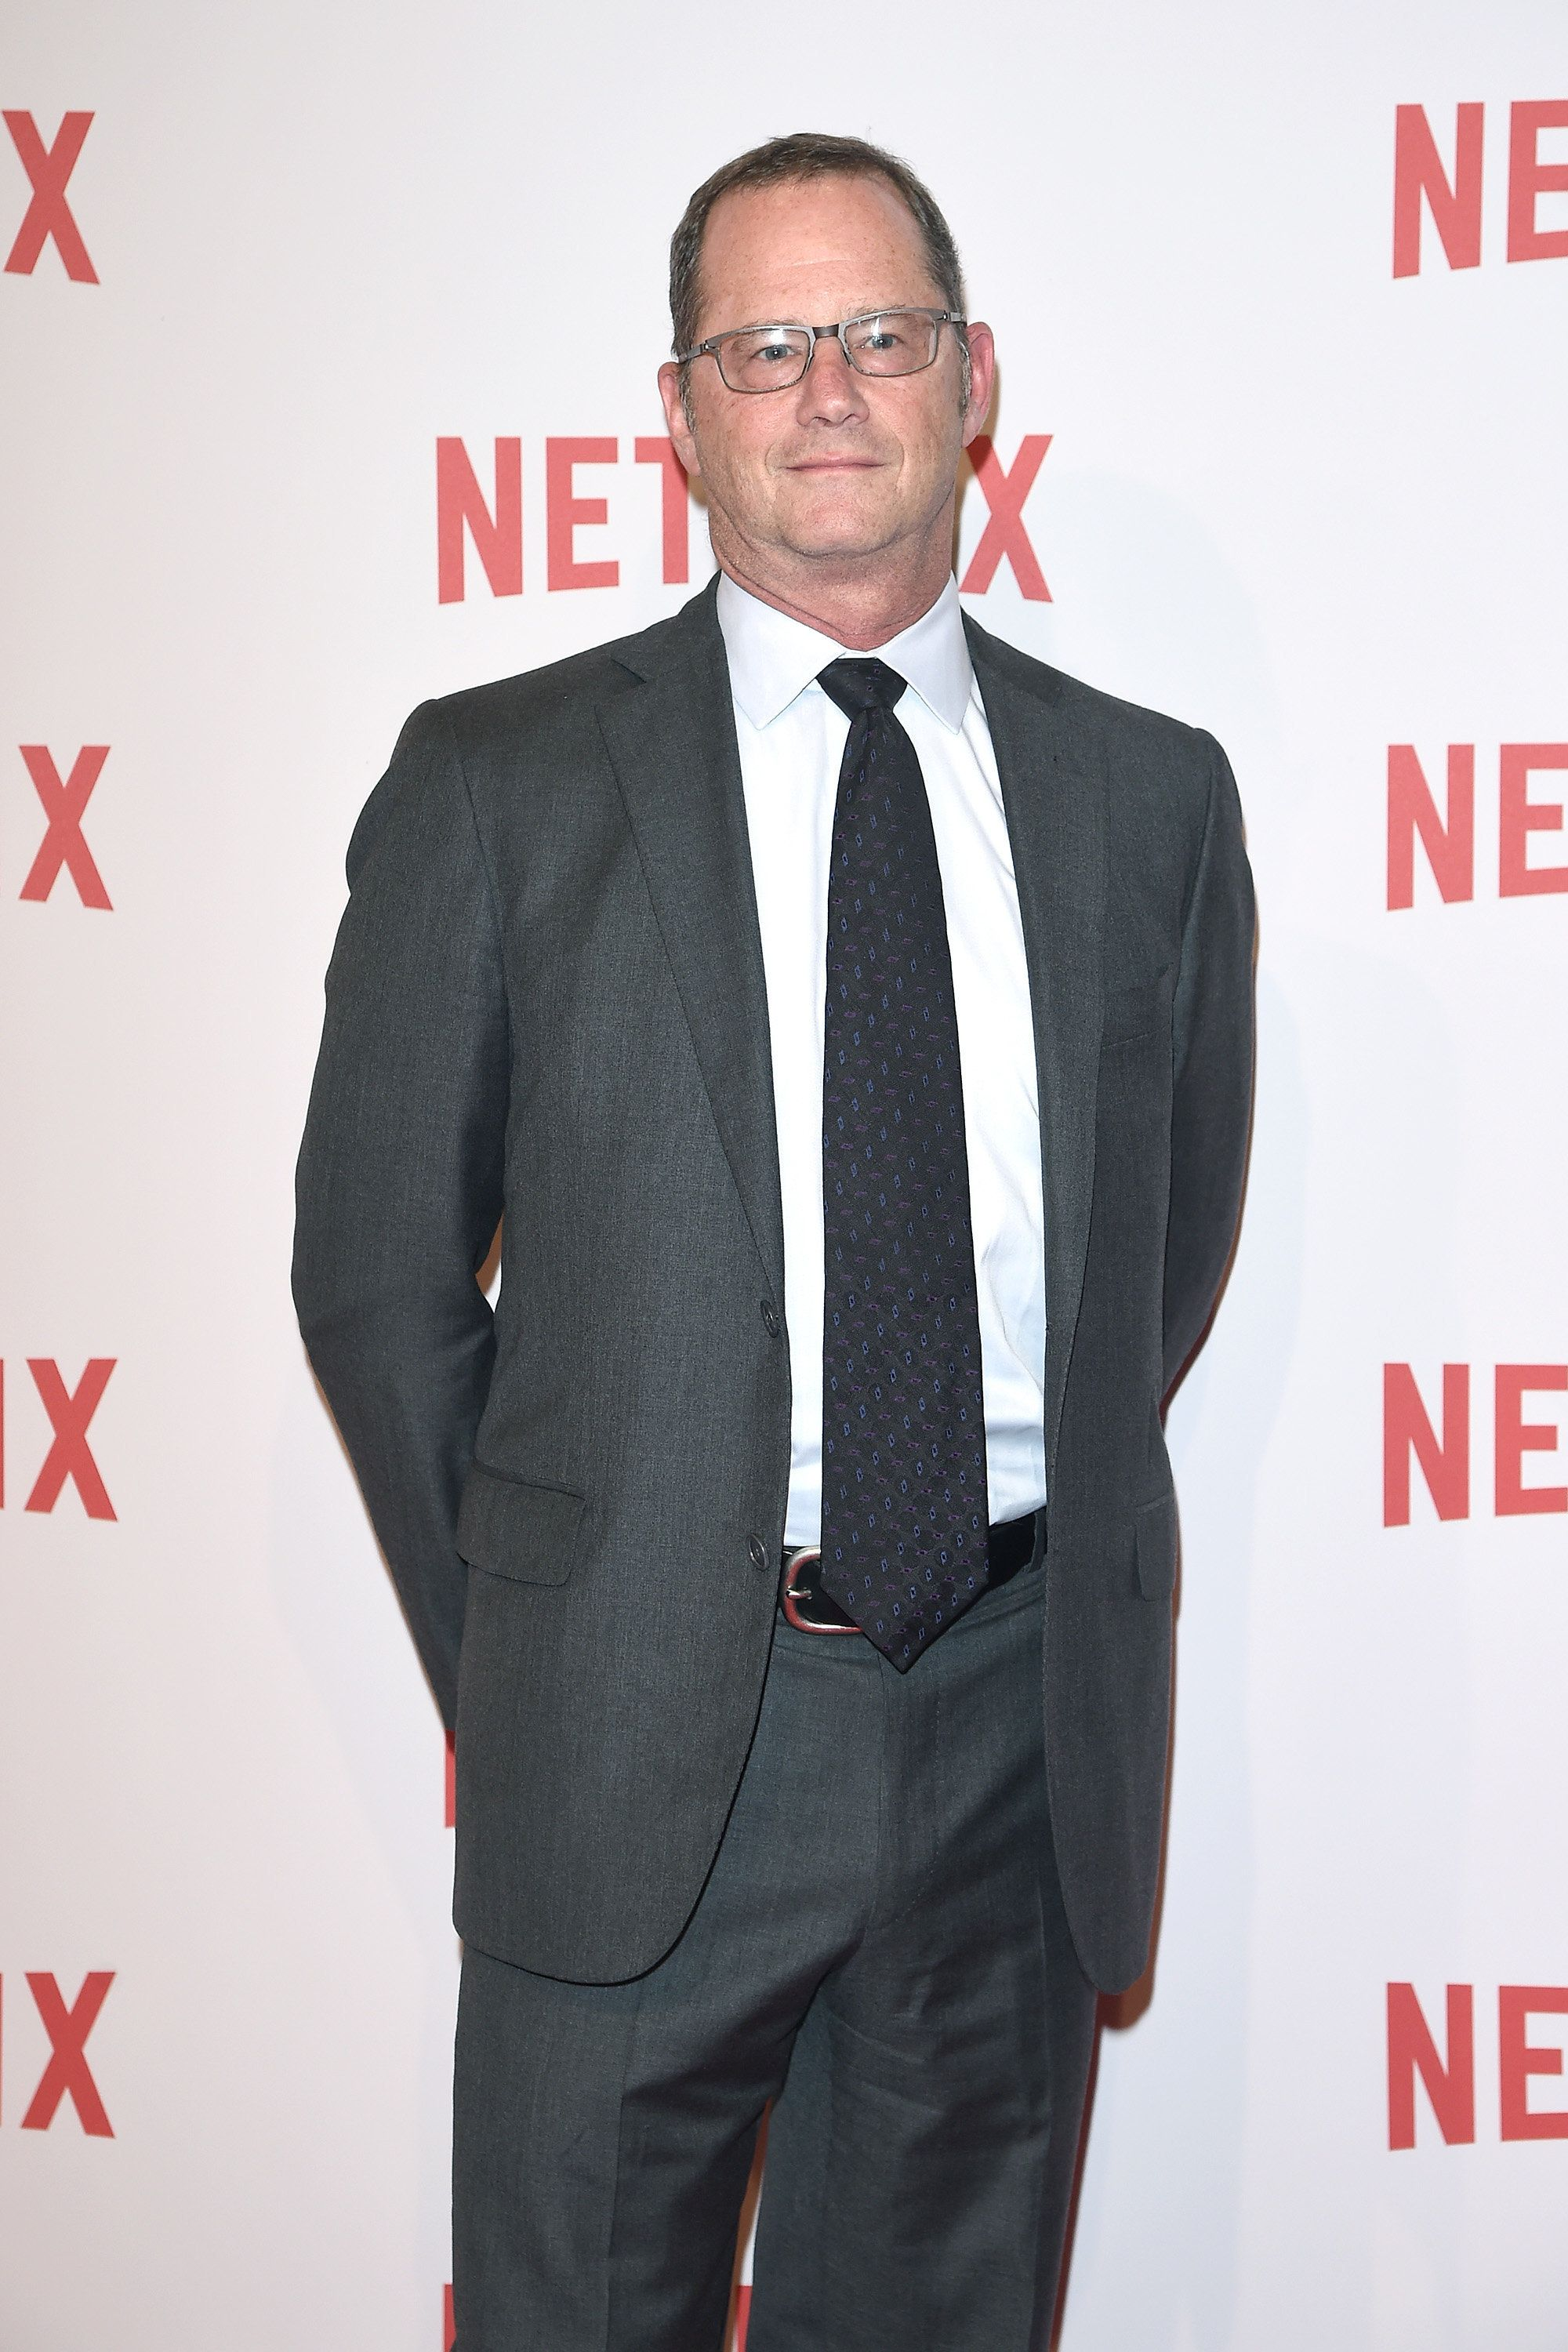 Netflix Fires Communications Chief Over Use Of